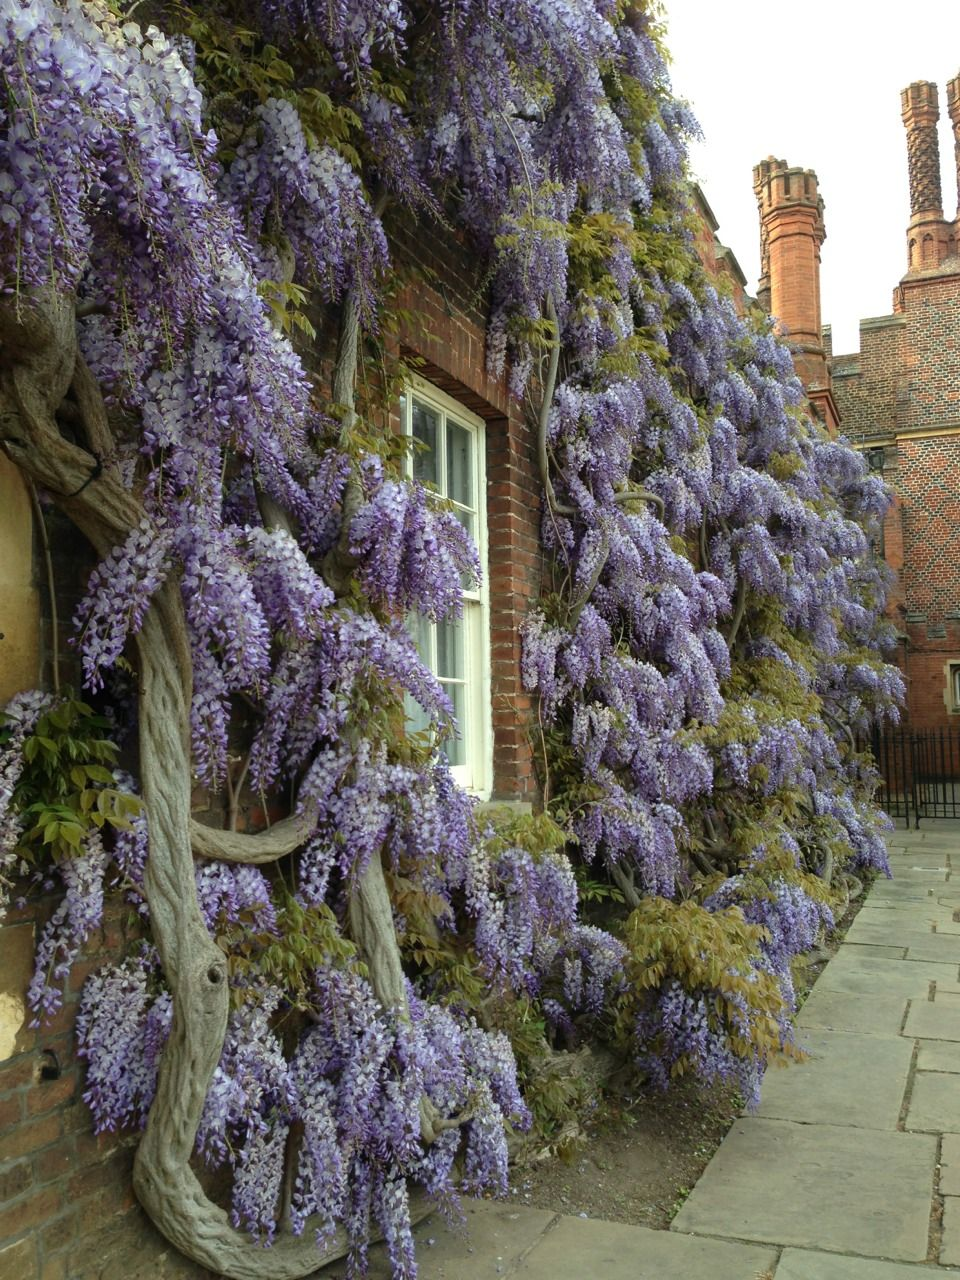 hampton court palace, england. vine. Hampton court